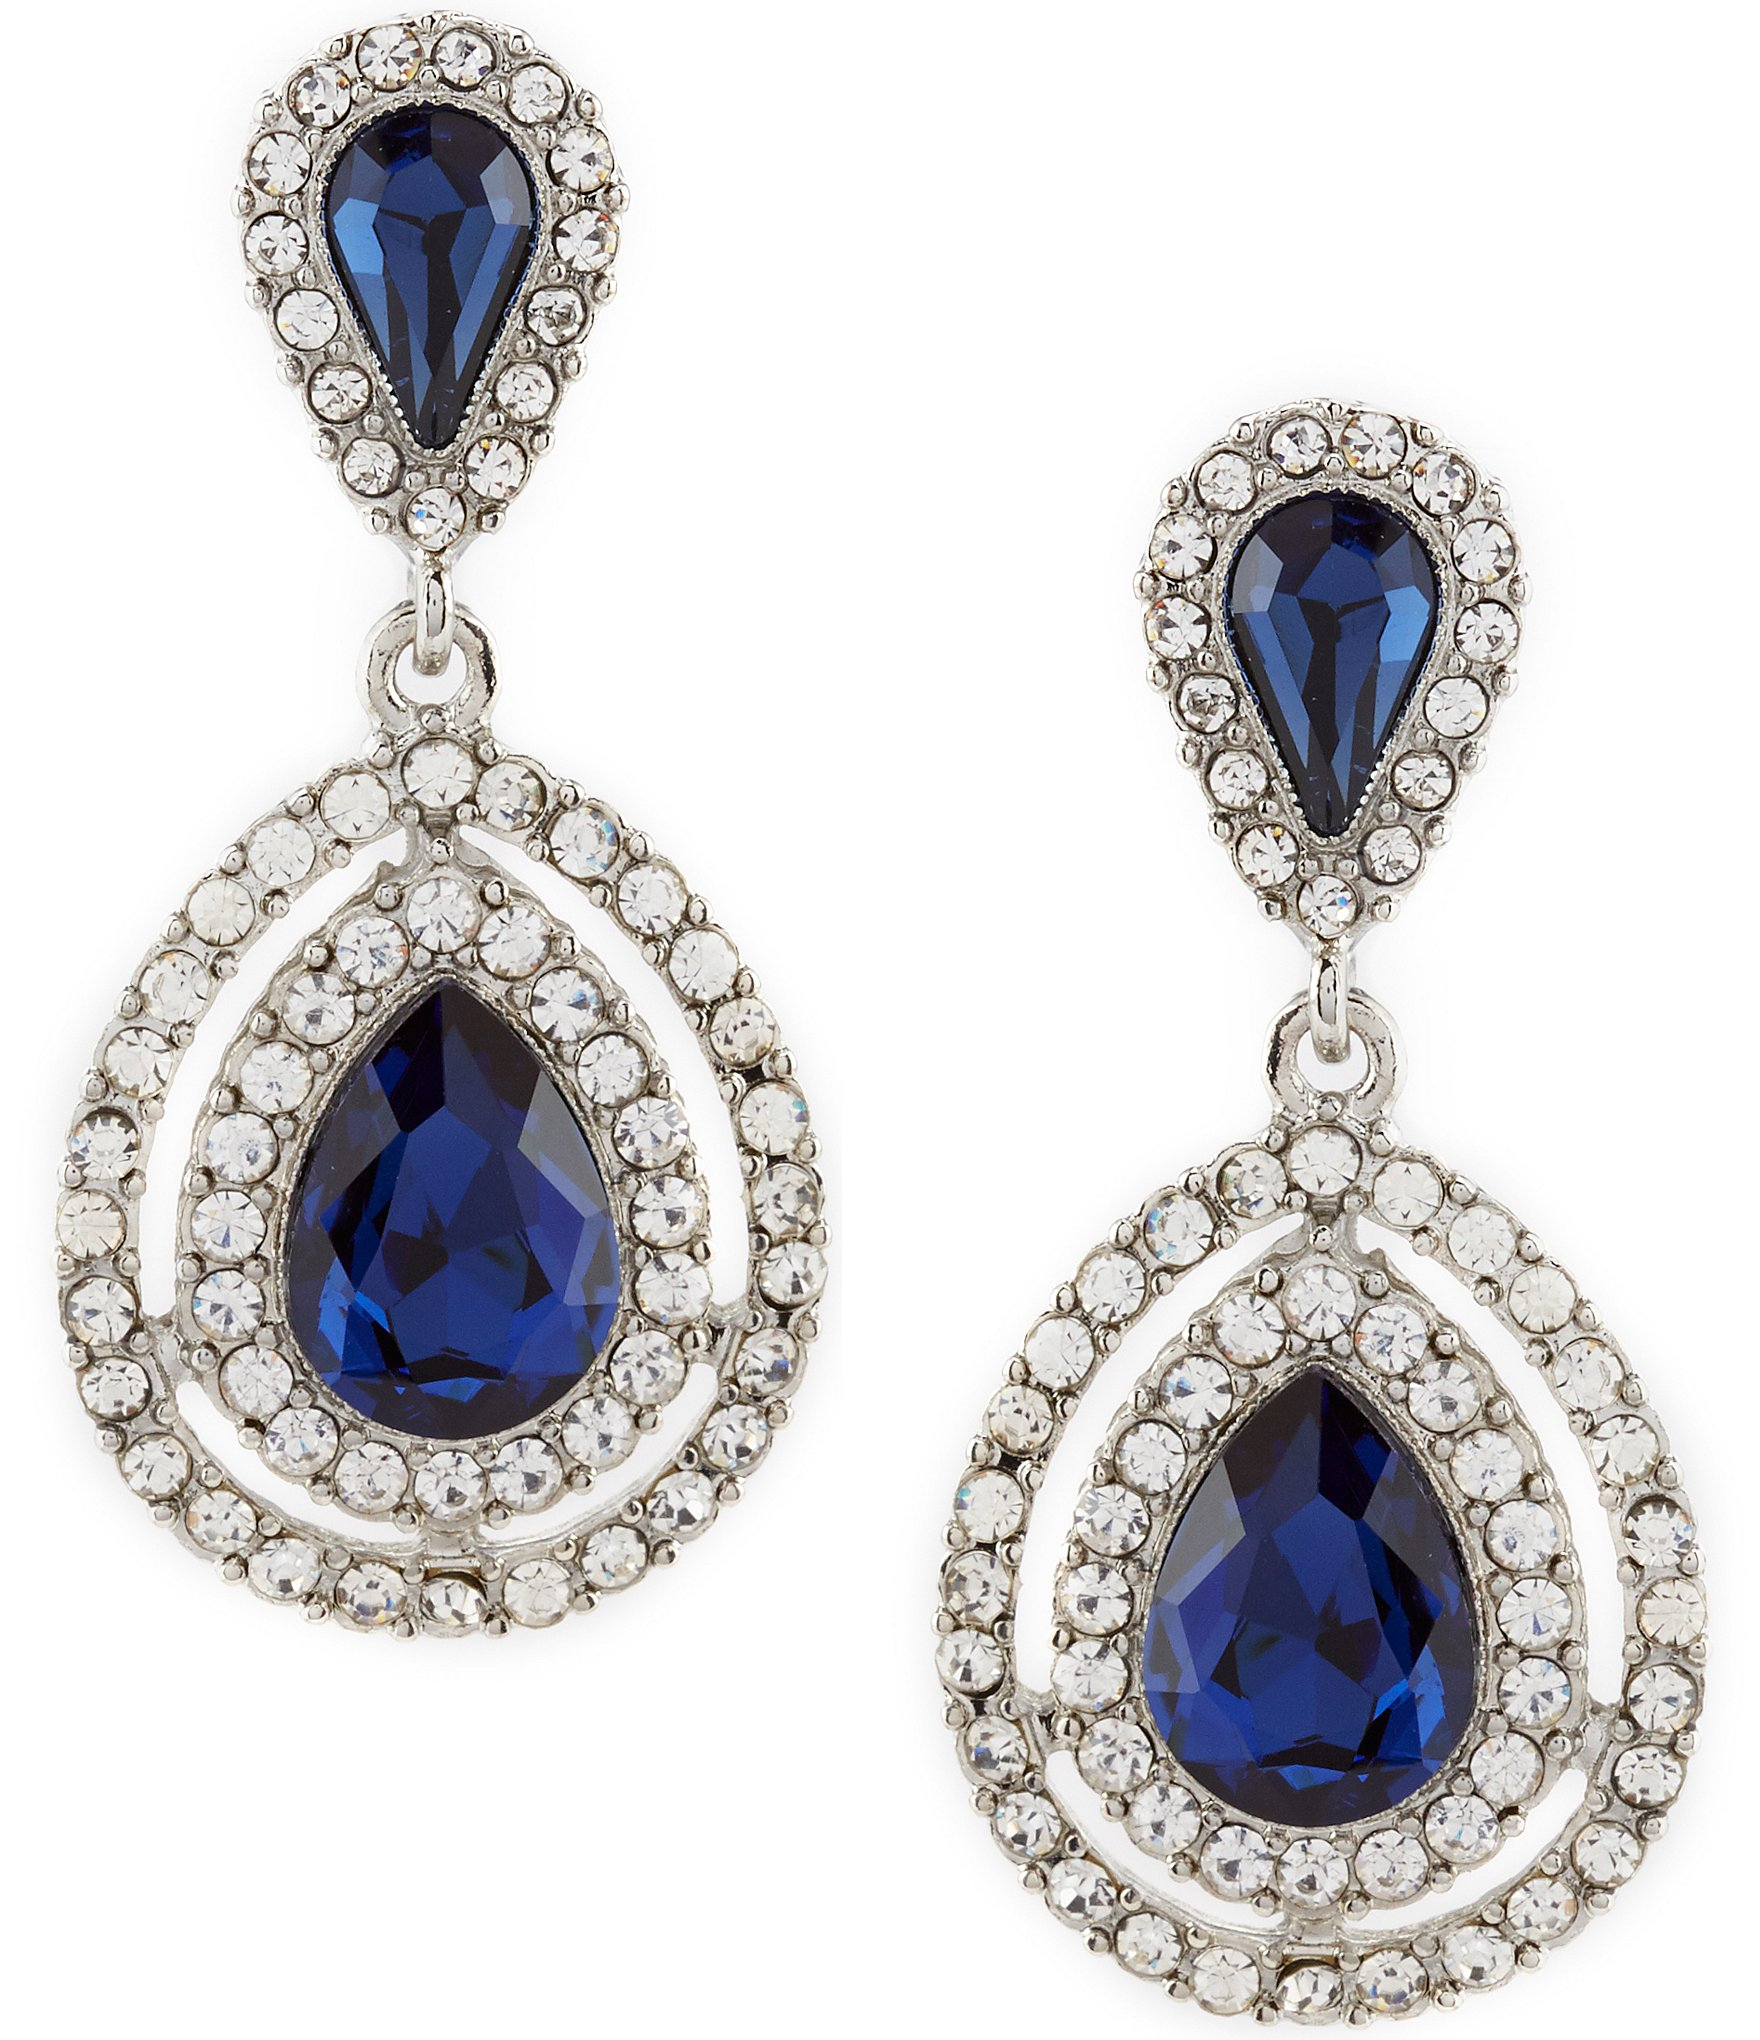 Clip On Earrings Store Antique Silver and Montana Blue Crystal Open Teardrop Vintage E4TjIePQ